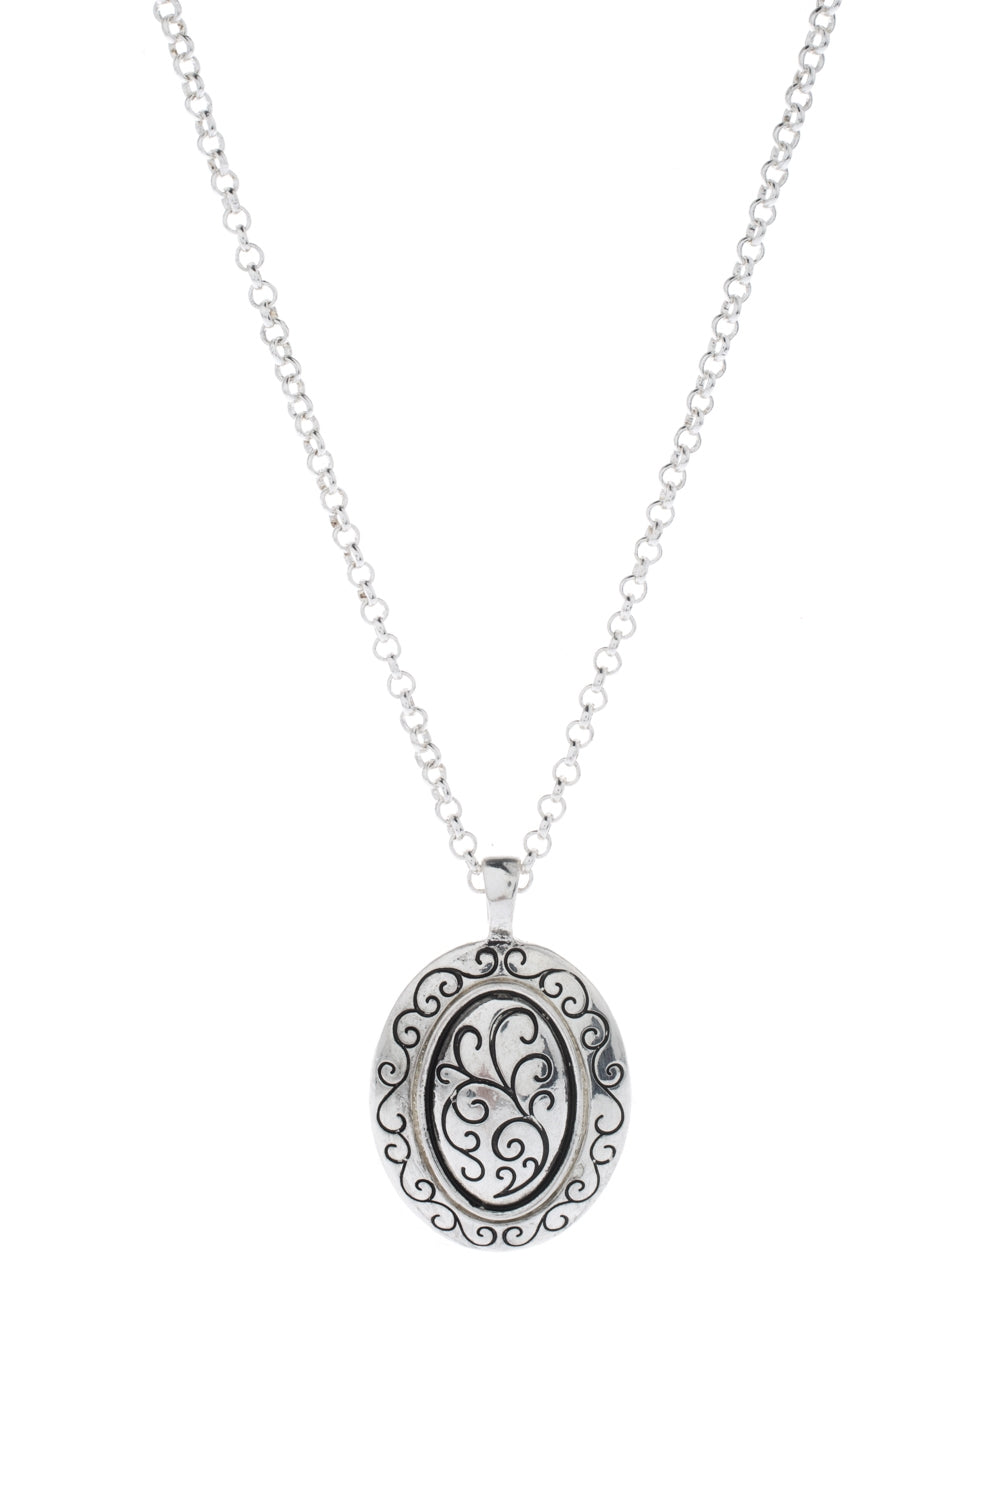 Type 2 Timeless Treasure Necklace